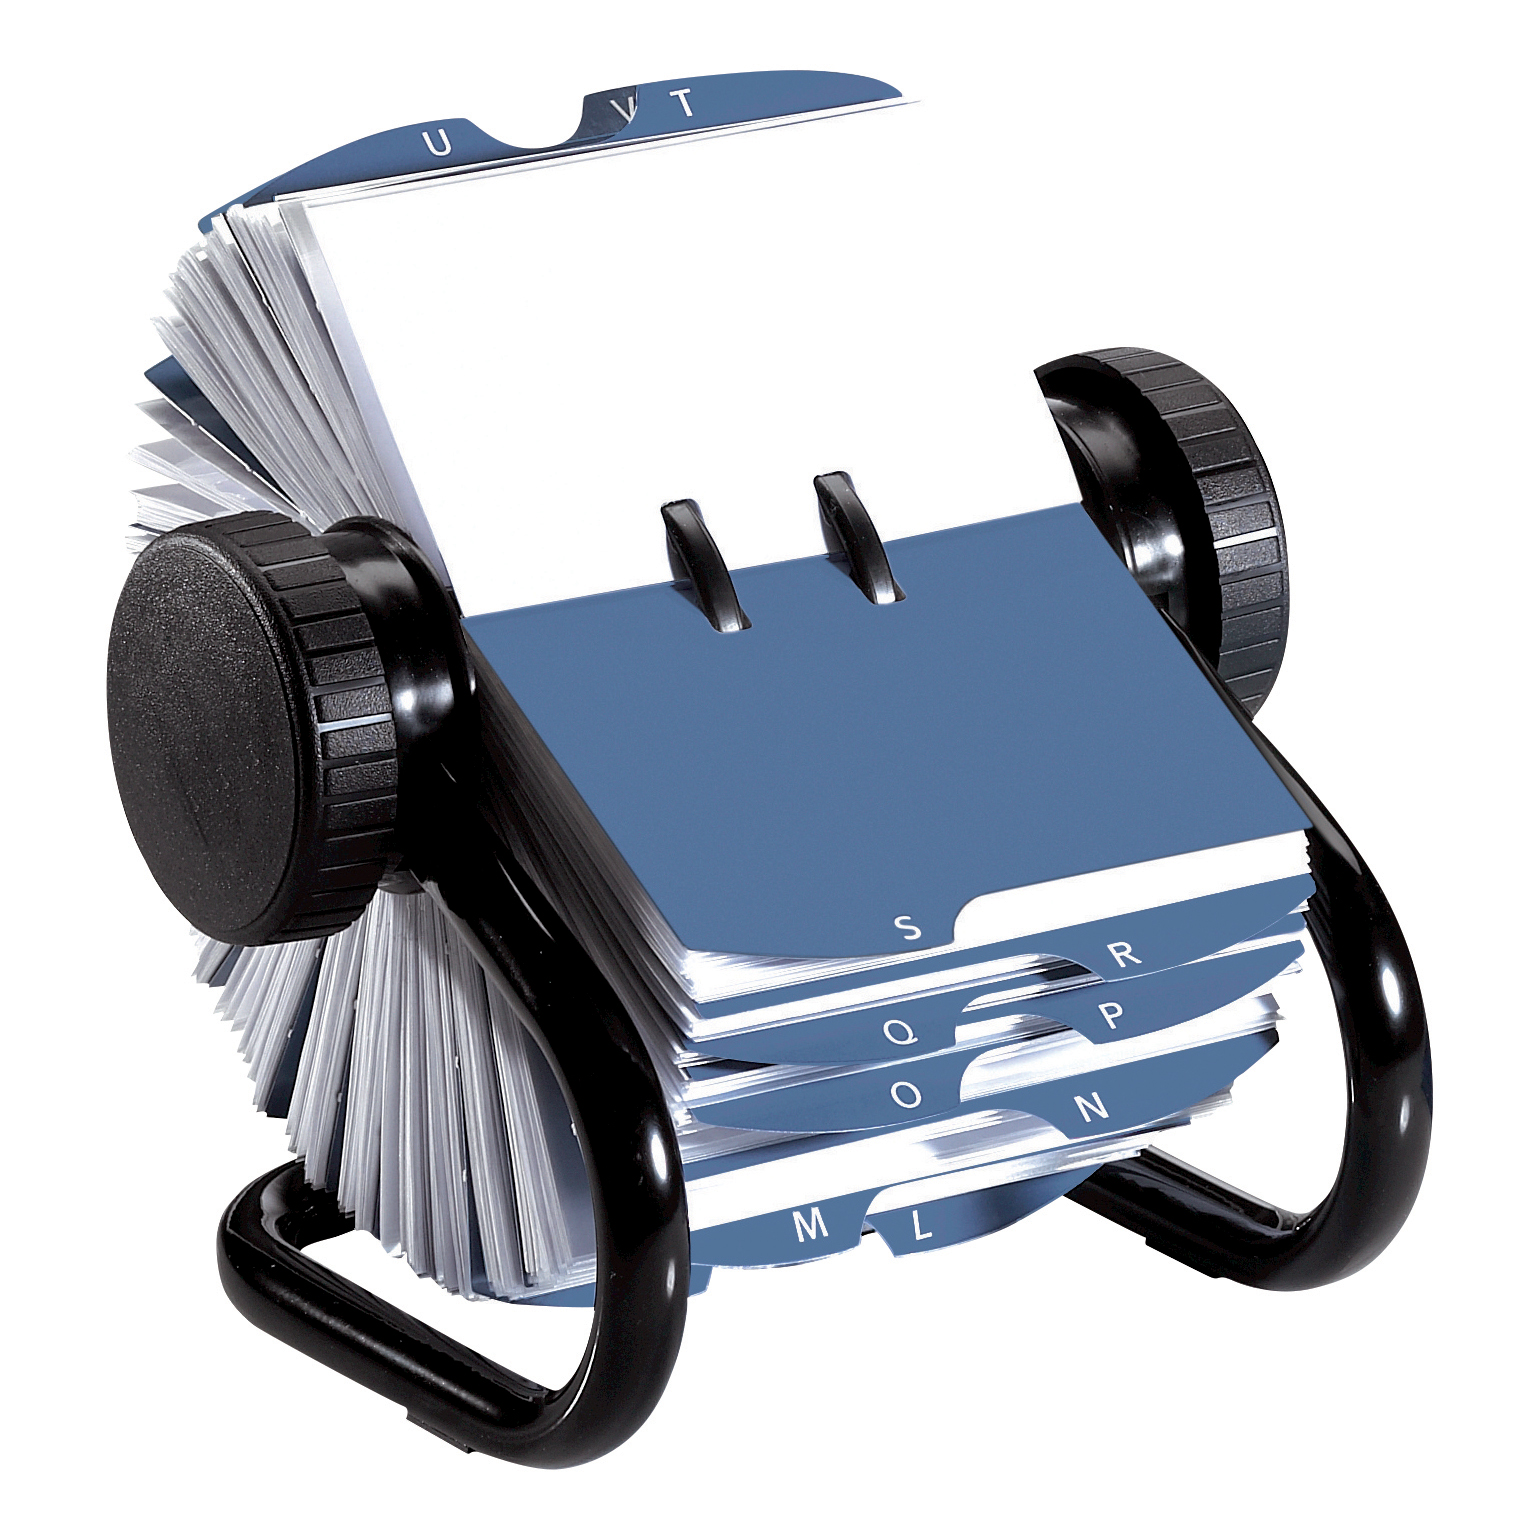 Rolodex Classic 200 Rotary Business Card Index File with 200 Sleeves ...